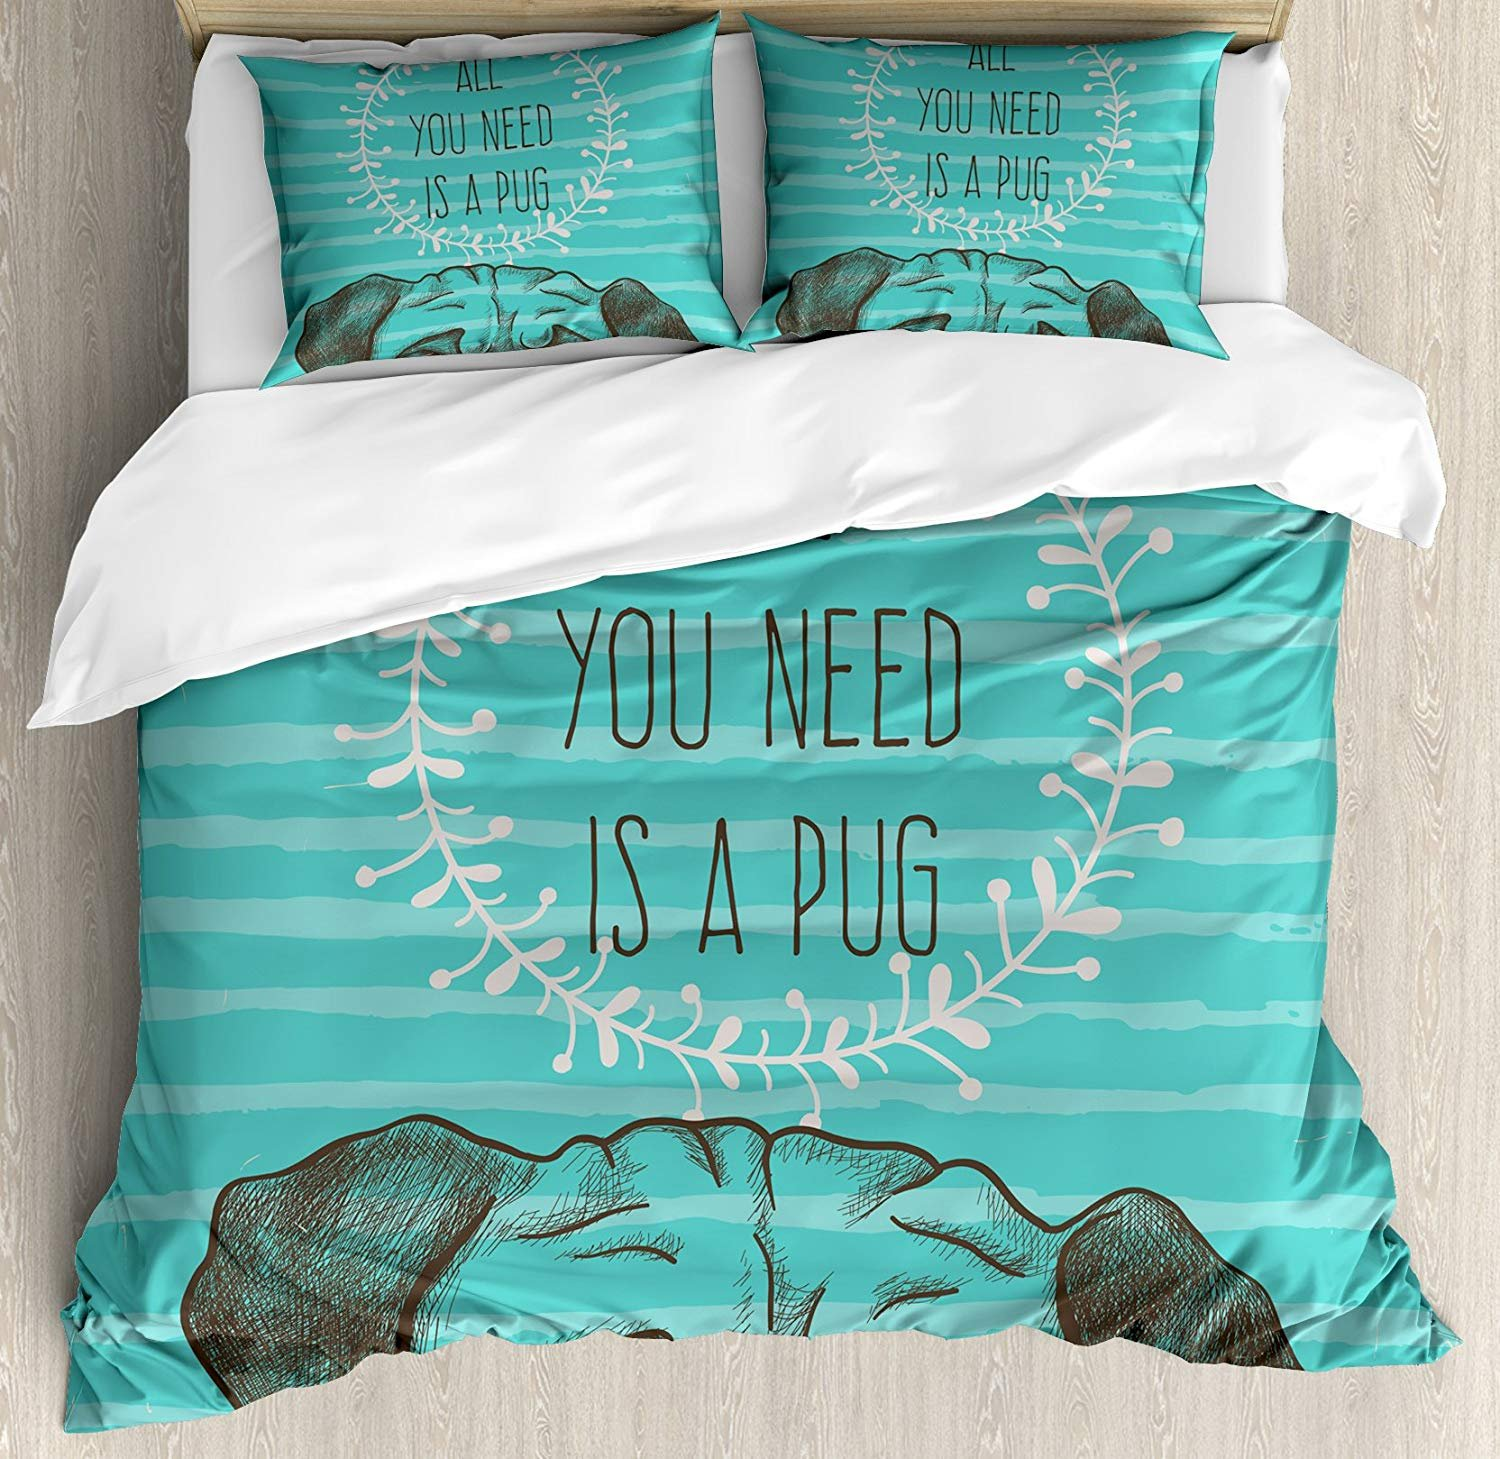 Beauty Decor Pug Duvet Cover Set Animal Image of a Cute Dog with All You Need is a Pug Quote on an Aqua Background Microfiber Bedding Sets with Zipper and Corner Ties Sea Green Brown (4 Pcs, Twin)